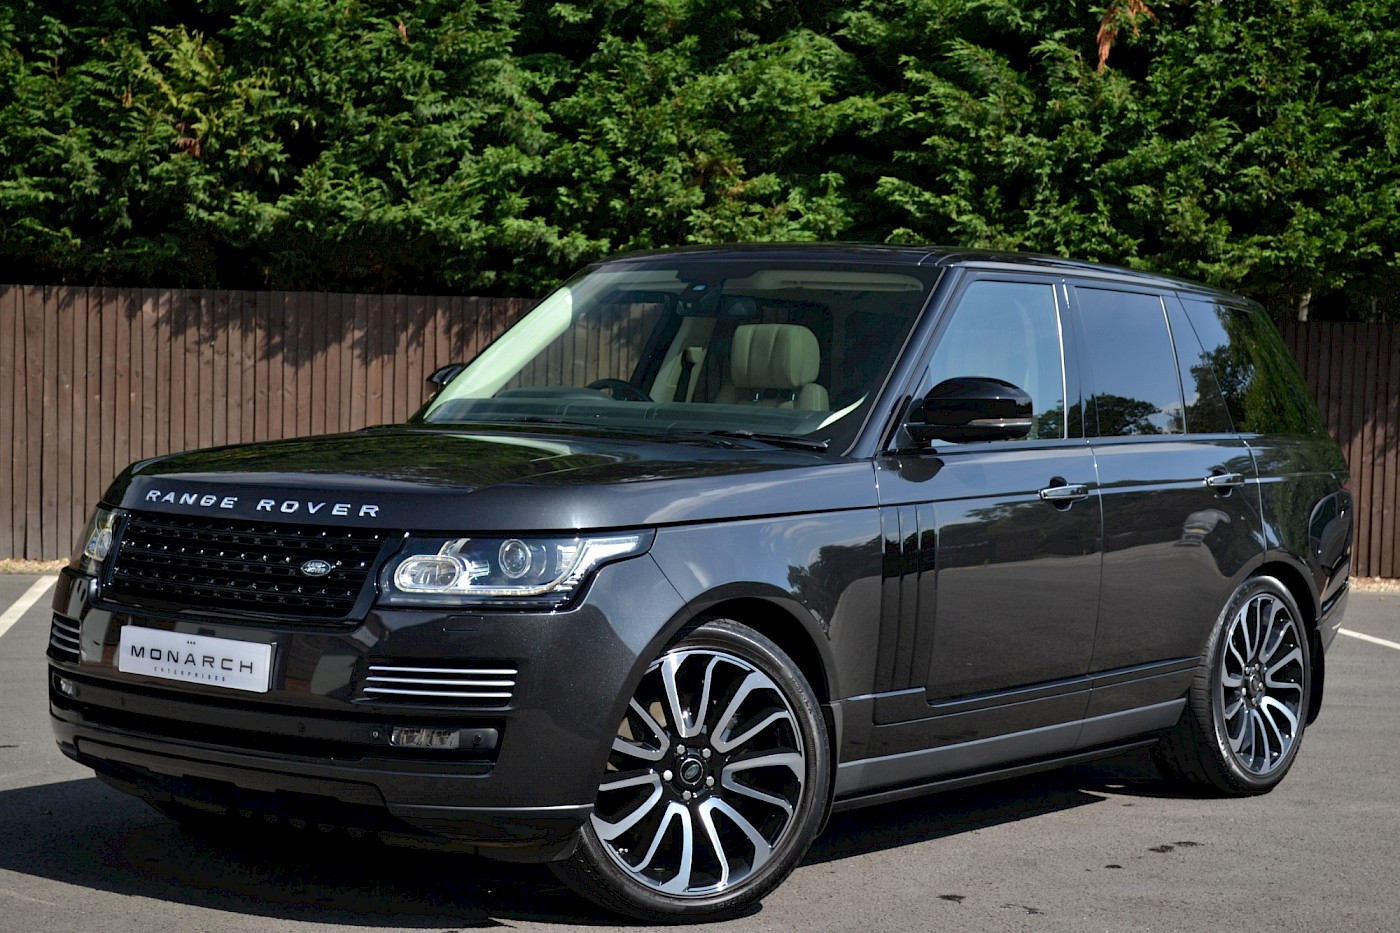 2014/64 Land Rover Range Rover 4.4 Autobiography 4